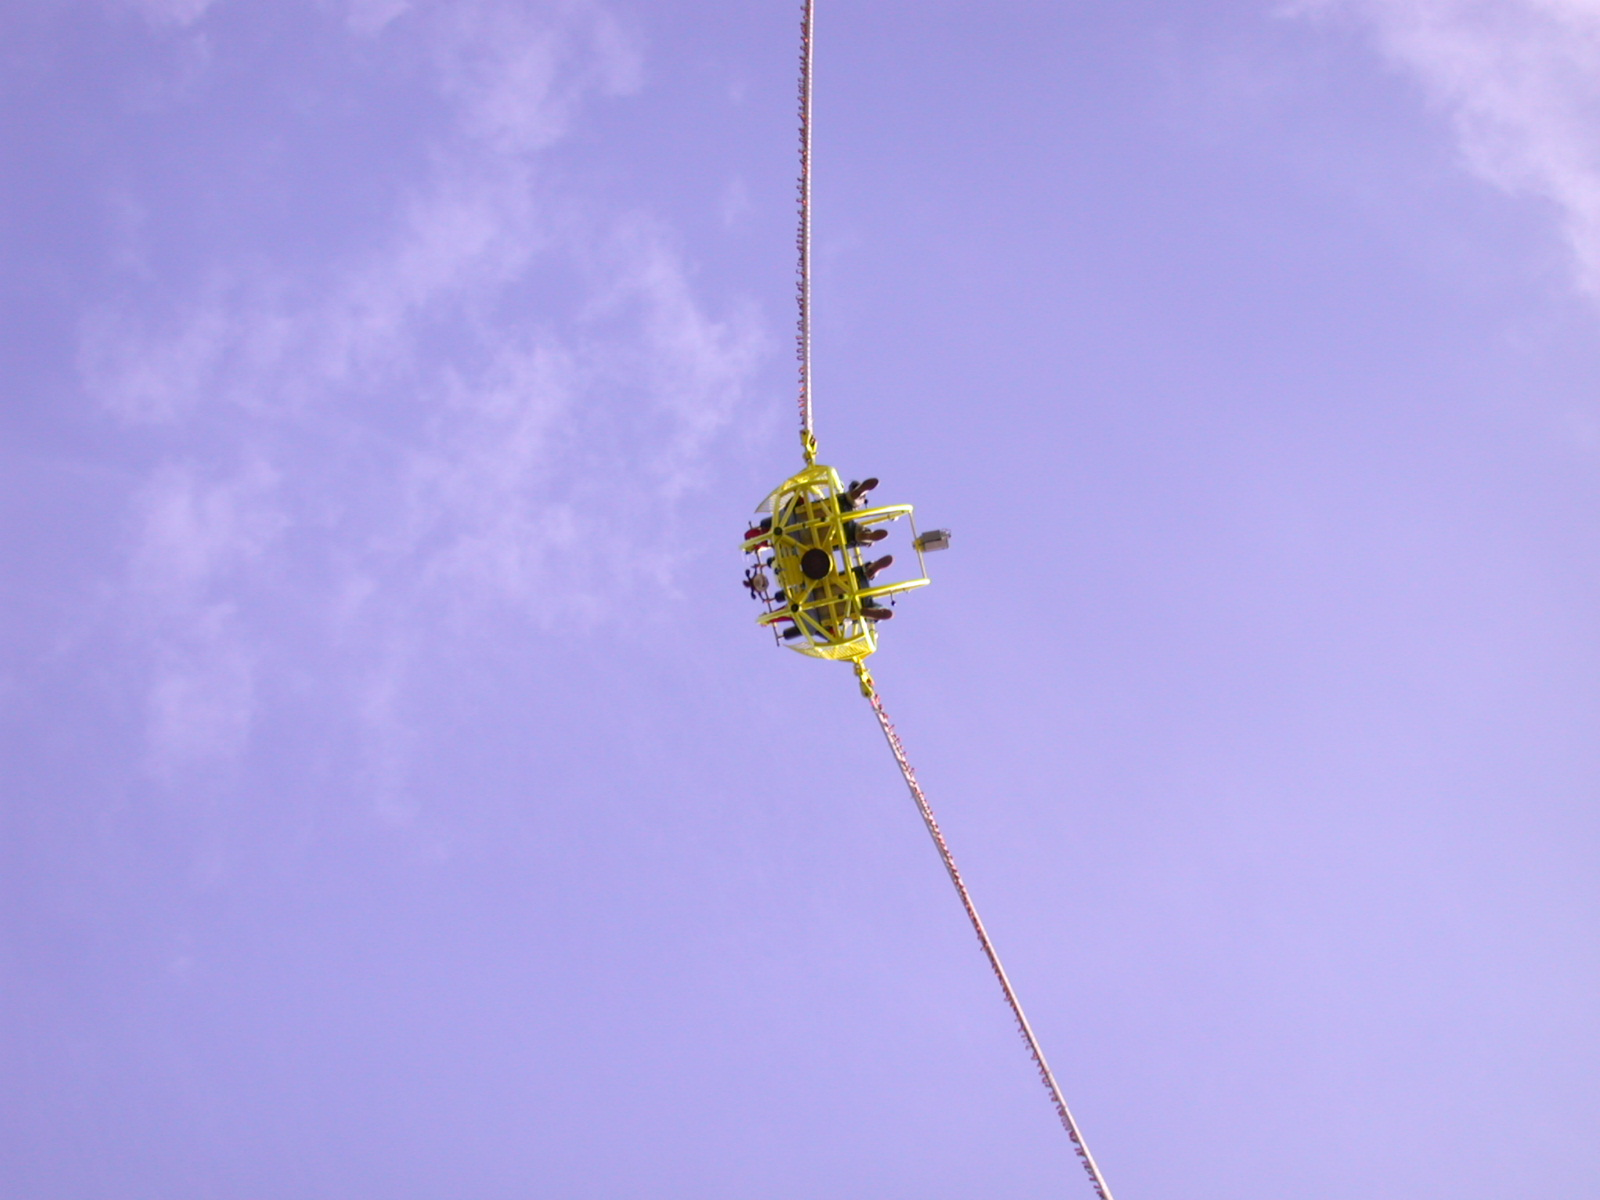 bungee ball people in attraction fairground entertainment thrill adrenaline